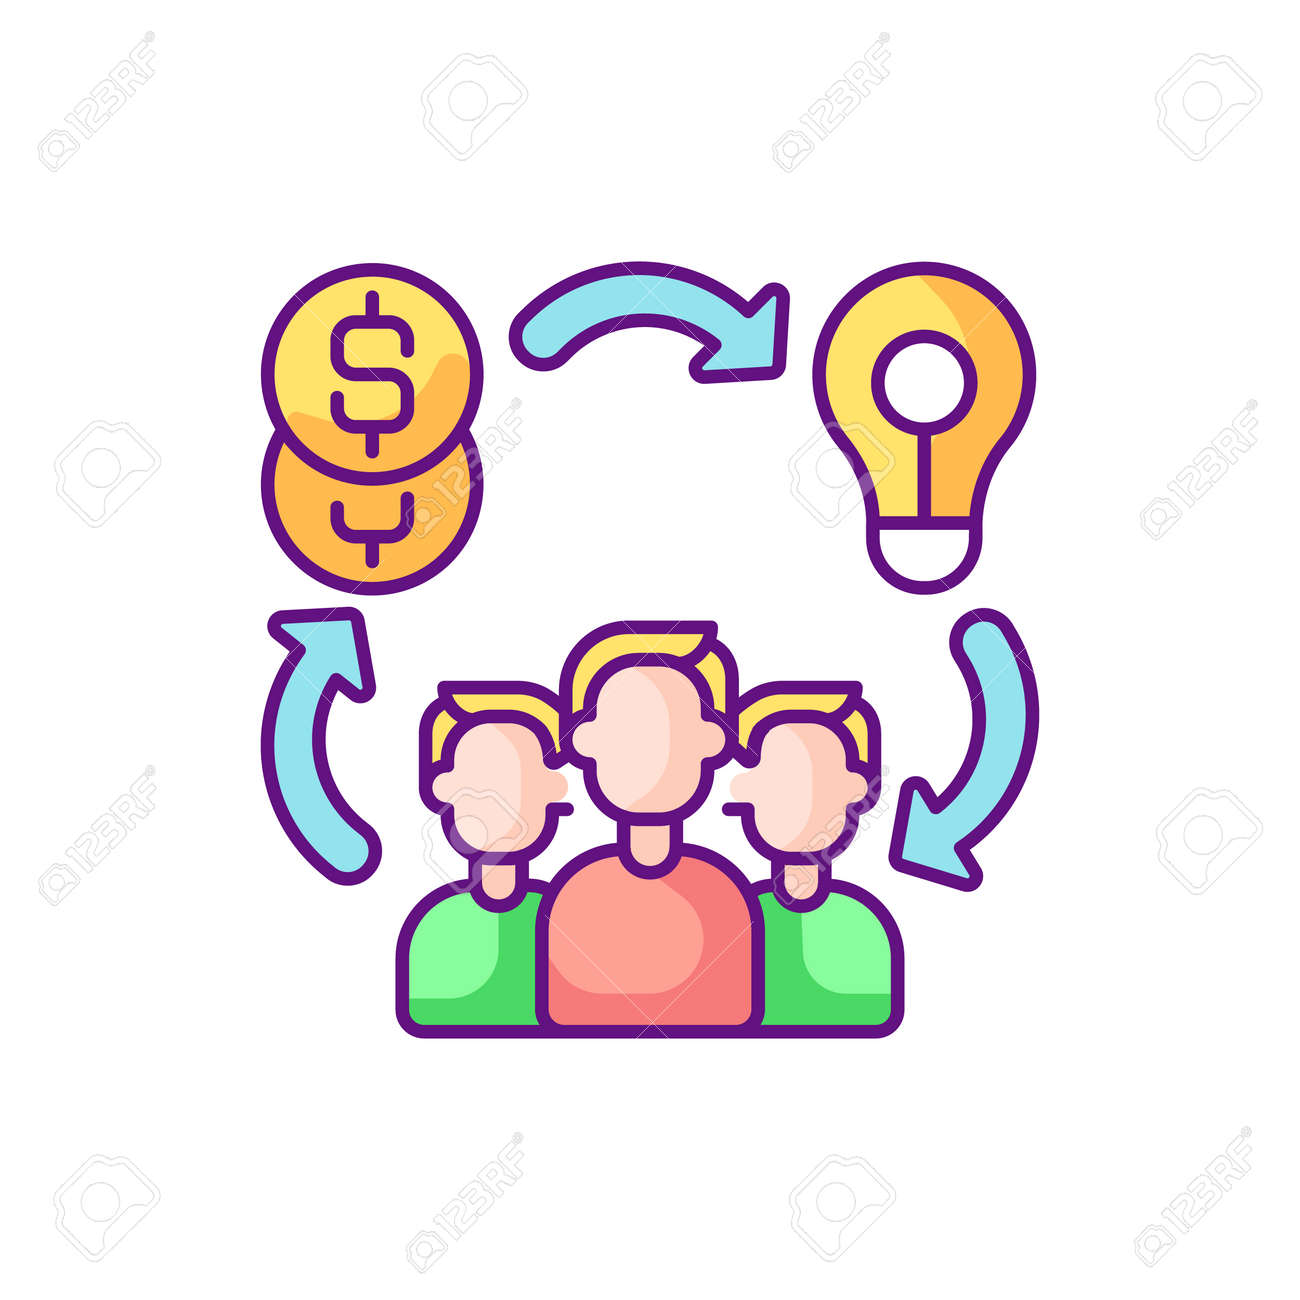 Social entrepreneurship RGB color icon. Approach by companies in which they develop and implement solutions to social issues. Isolated vector illustration - 159667654